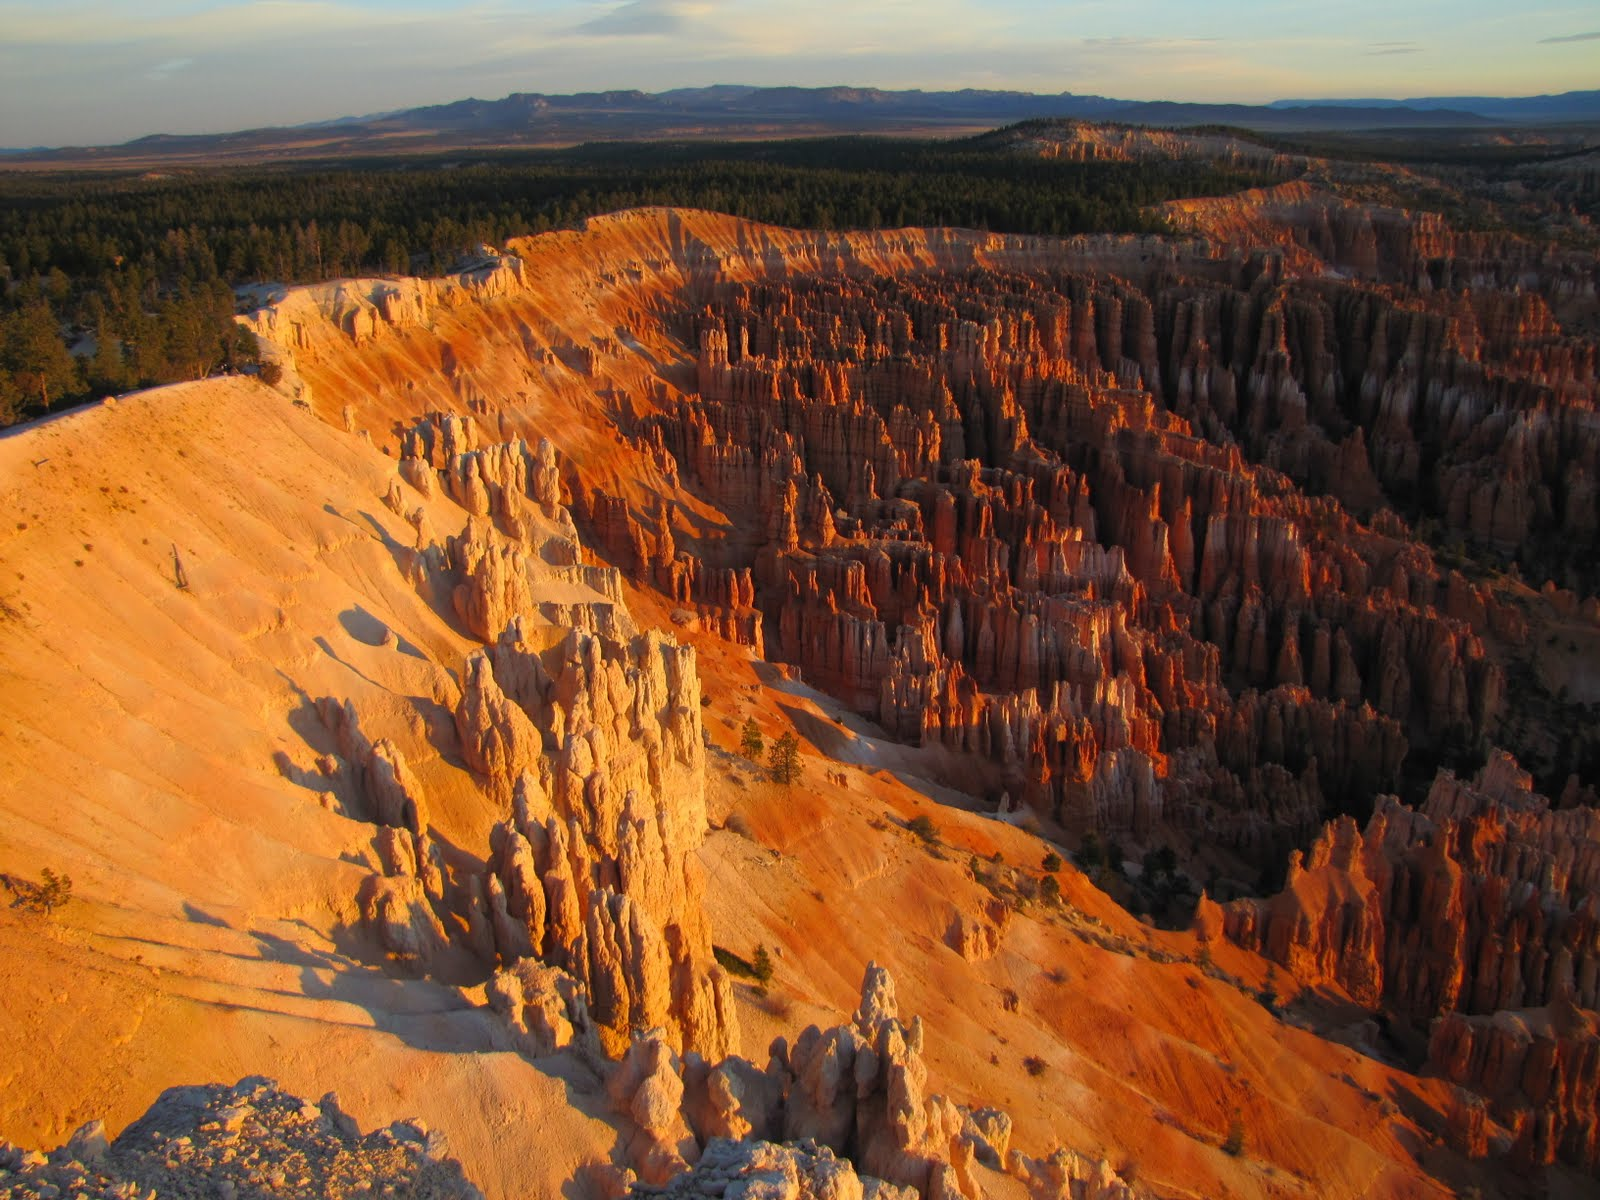 Bryce Canyon at 6:43am, the Sunrise